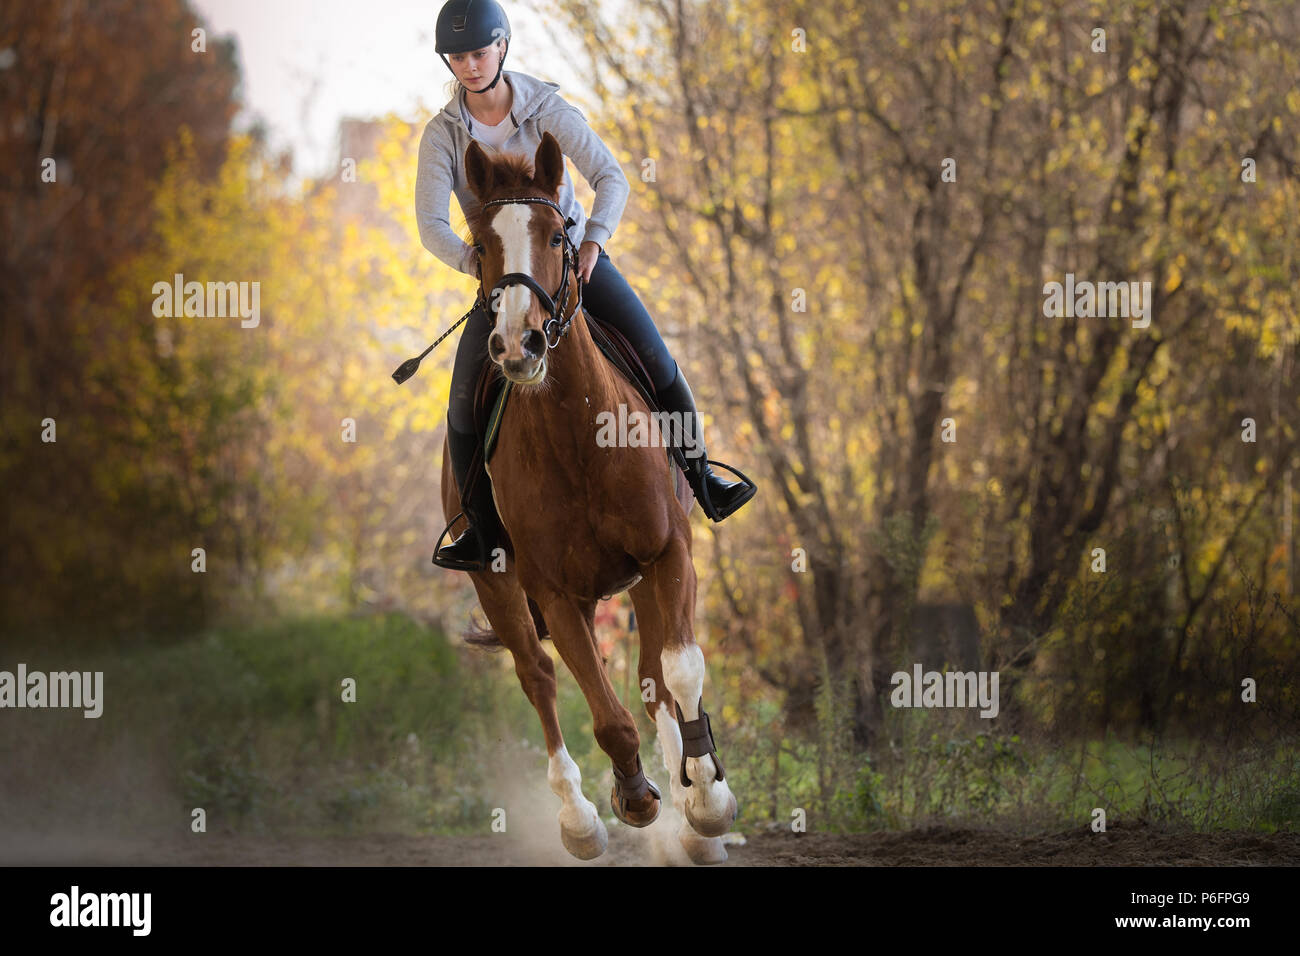 Young pretty girl - riding a horse with backlit leaves behind - Stock Image